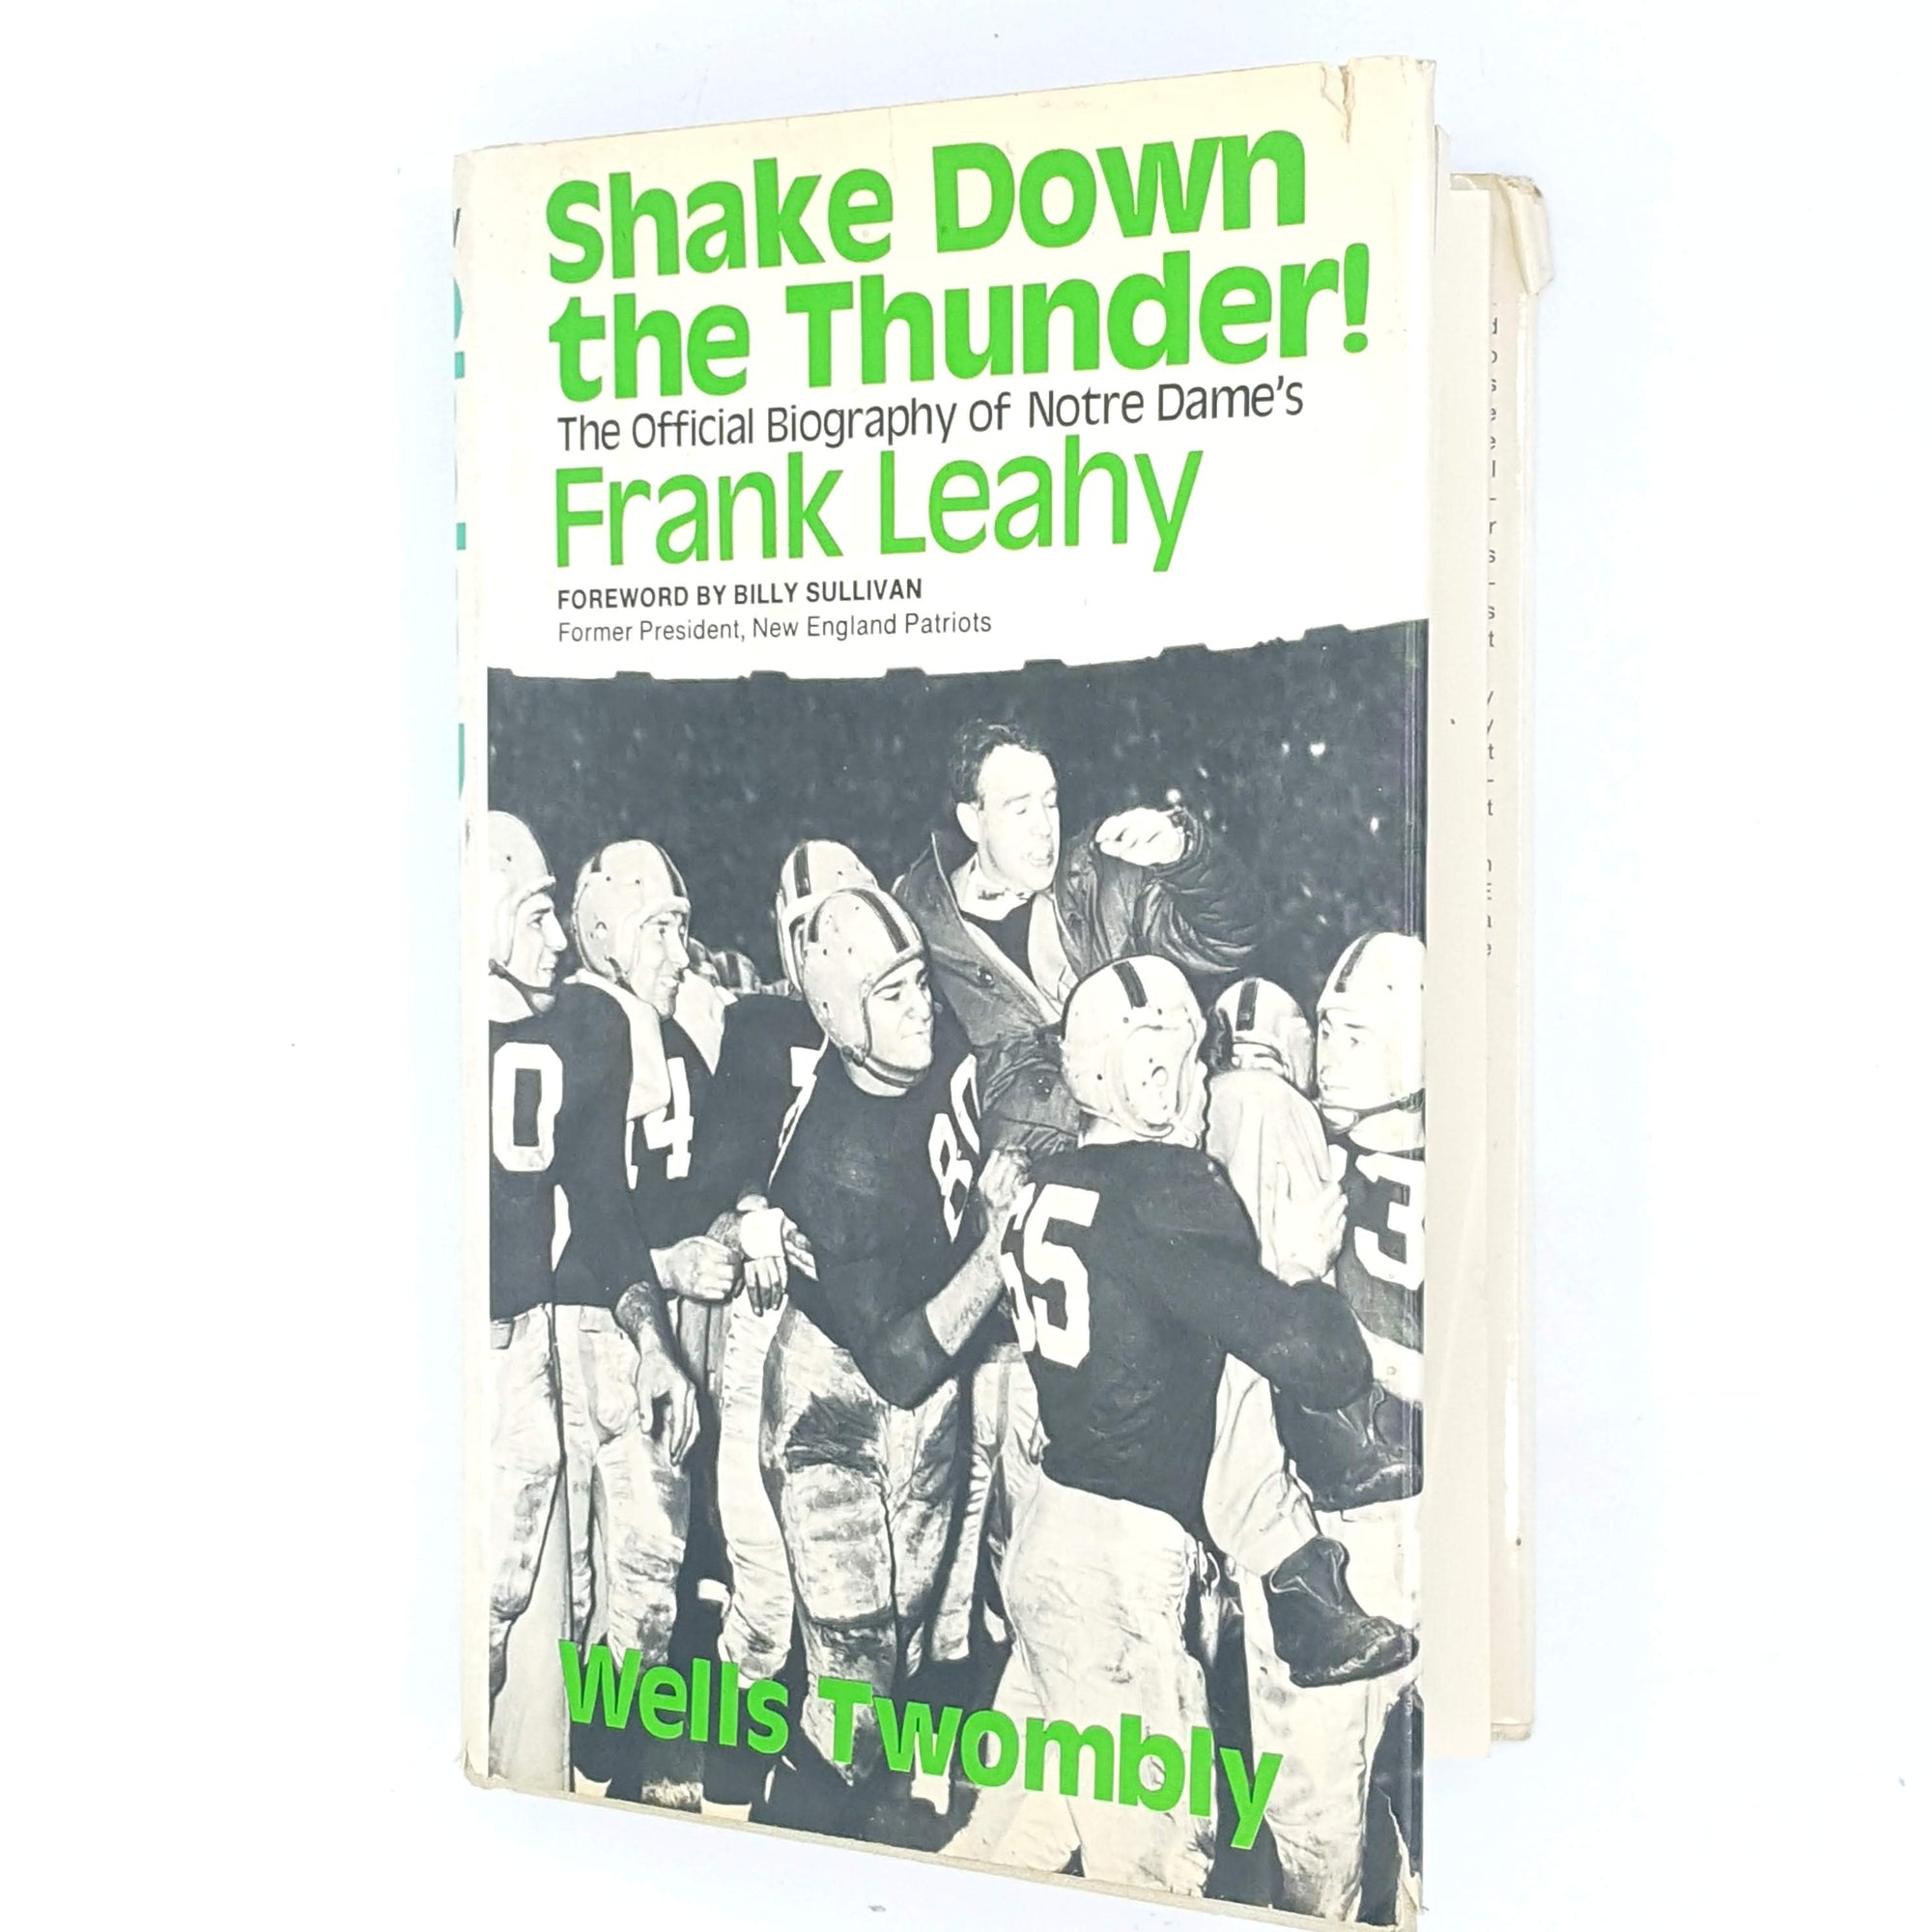 Shake Down the Thunder! The official biography of Notre Dame's Frank Leahy by Wells Twombly 1974